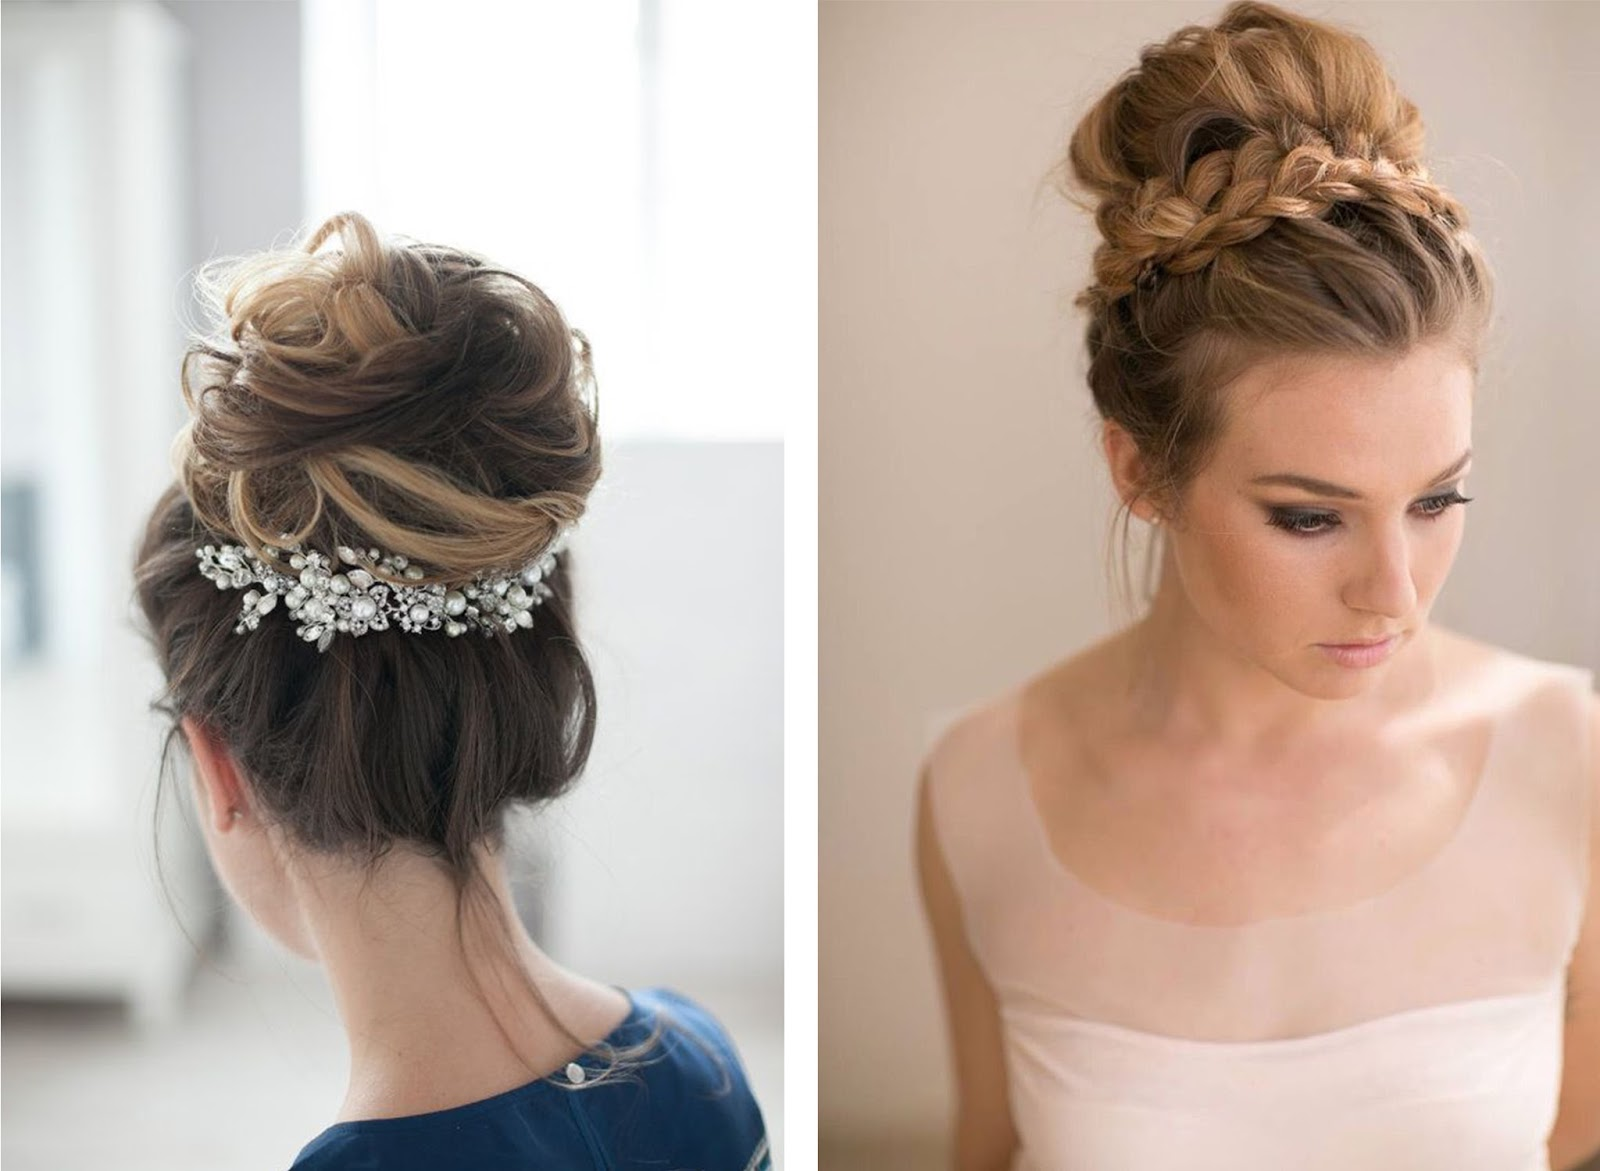 Bridal Hairstyles 2016: 4 Beautiful Bridal Hairstyles